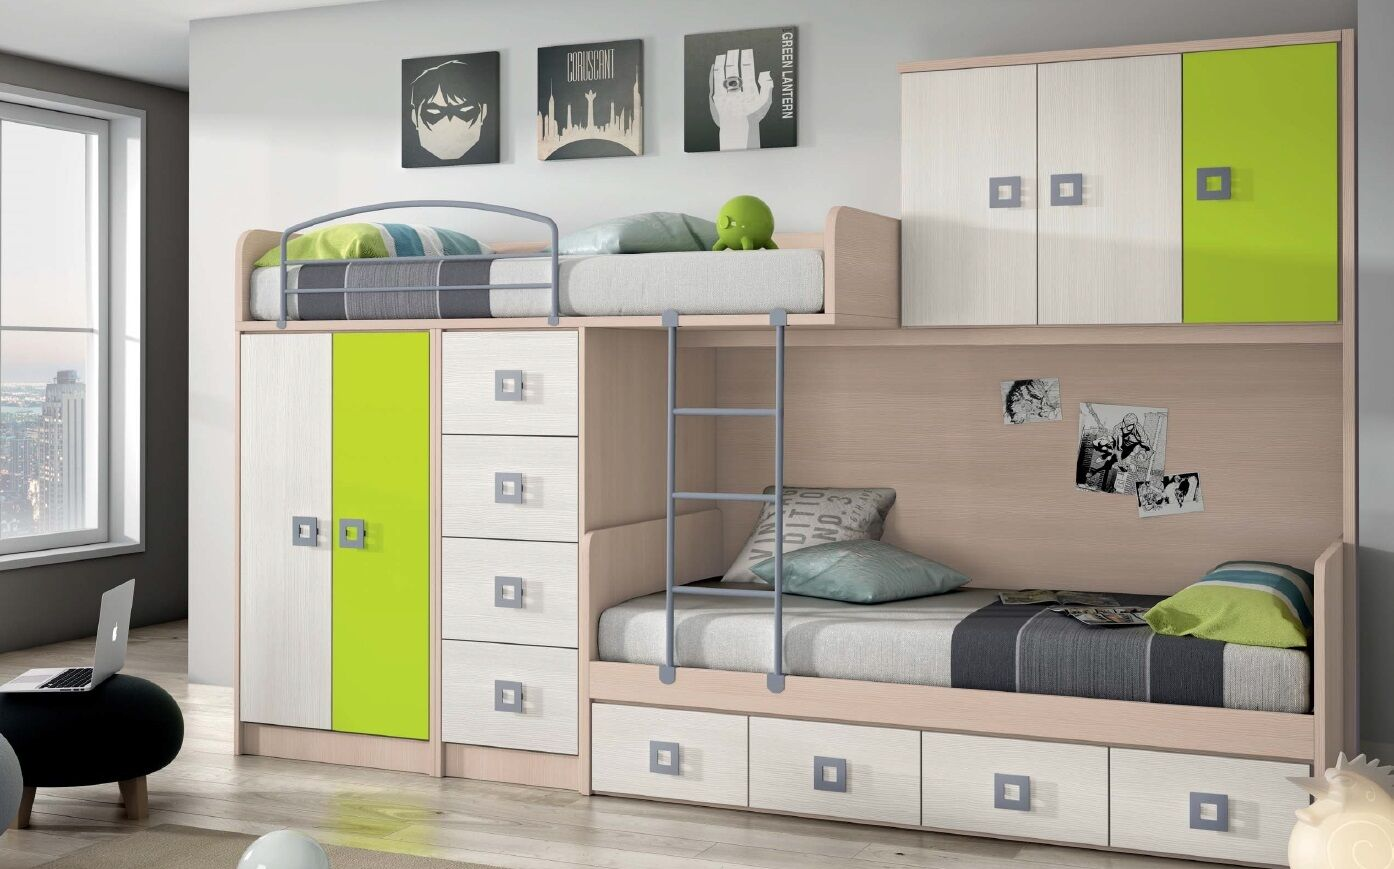 hochbett mit viel stauraum in 25 farben w hlbar etagenbett stockbett kinderbett eur. Black Bedroom Furniture Sets. Home Design Ideas